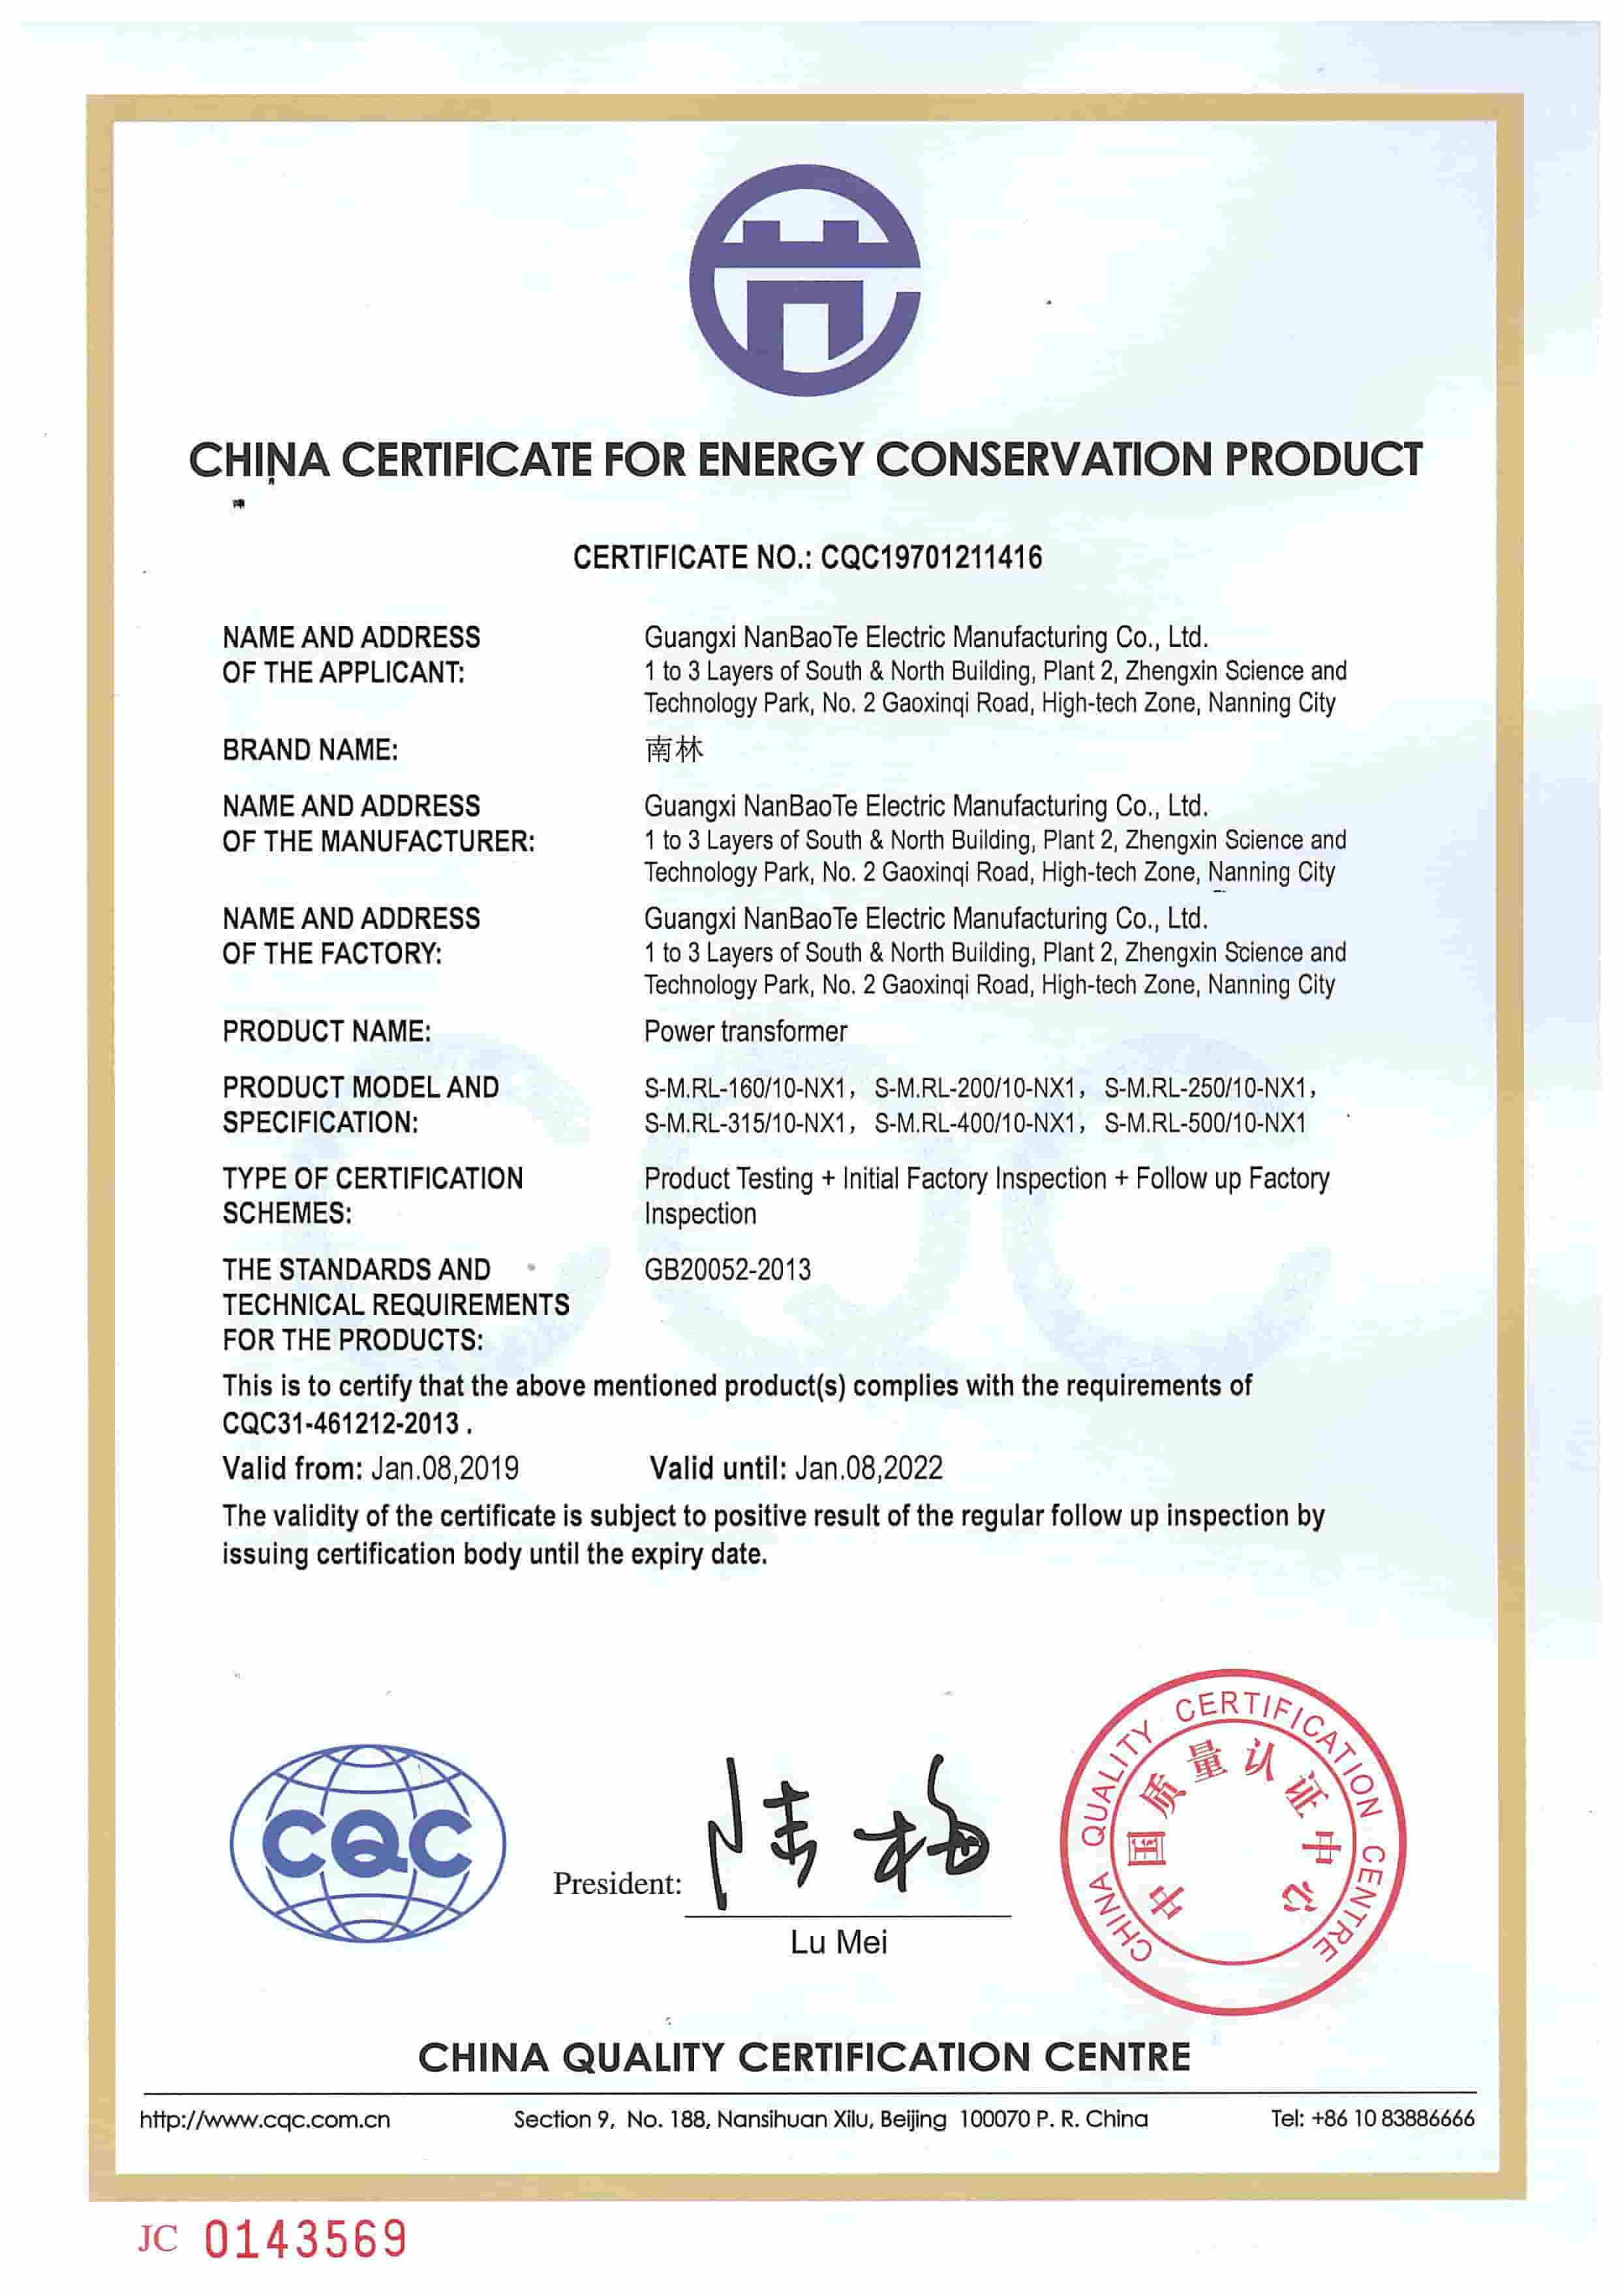 Three-dimensional Triangular Wound Core Oil-immersed Transformer Energy Conservation Product Certificate